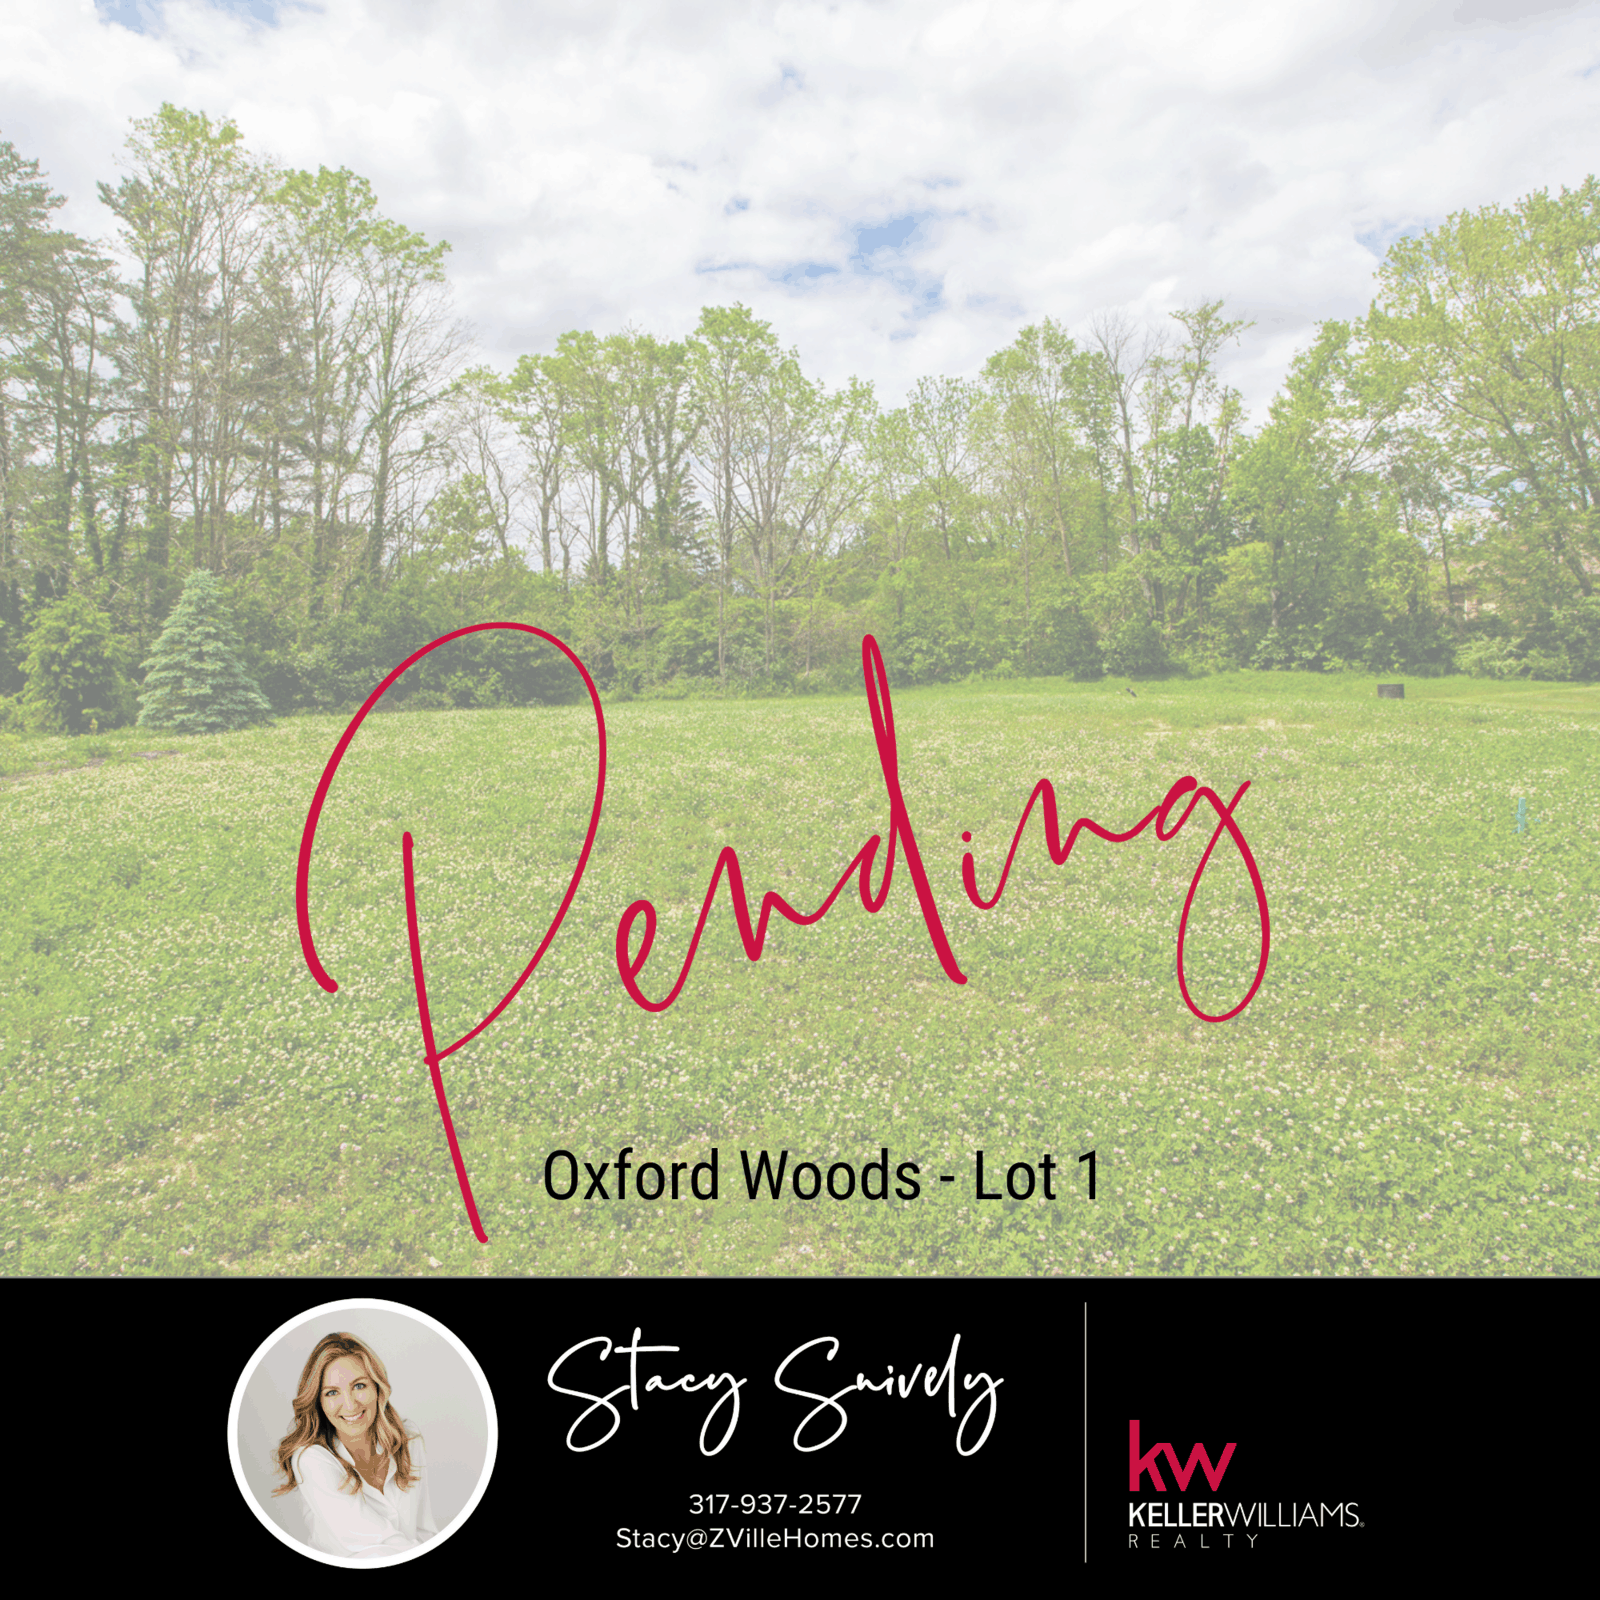 Oxford Woods - Lot 1 - Just Listed